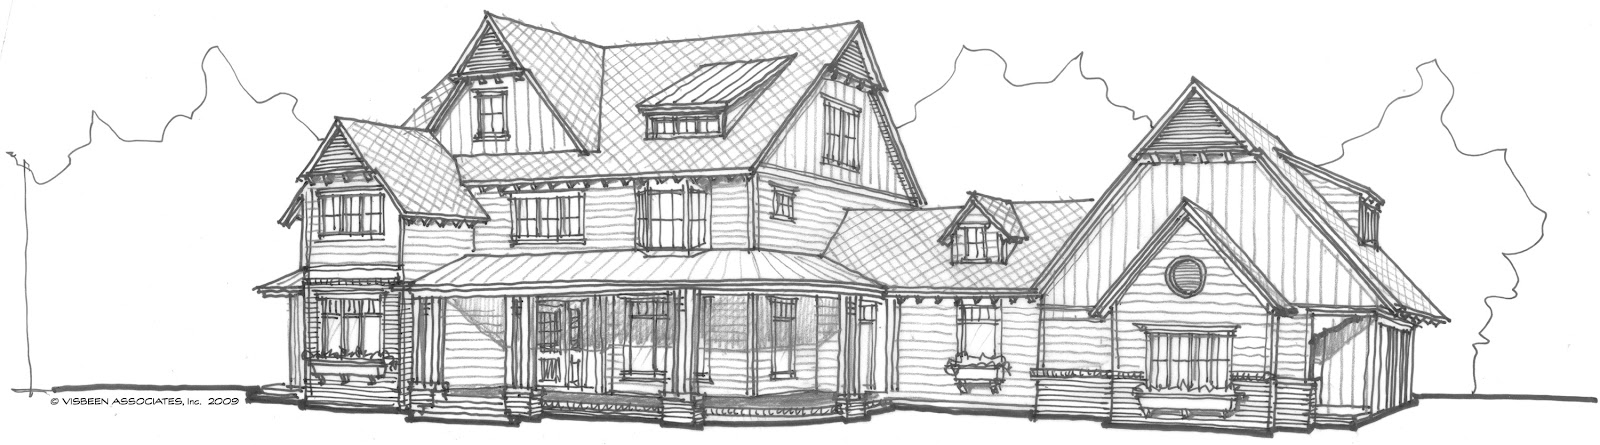 Architectural tutorial the american farmhouse visbeen for Visbeen architects floor plans